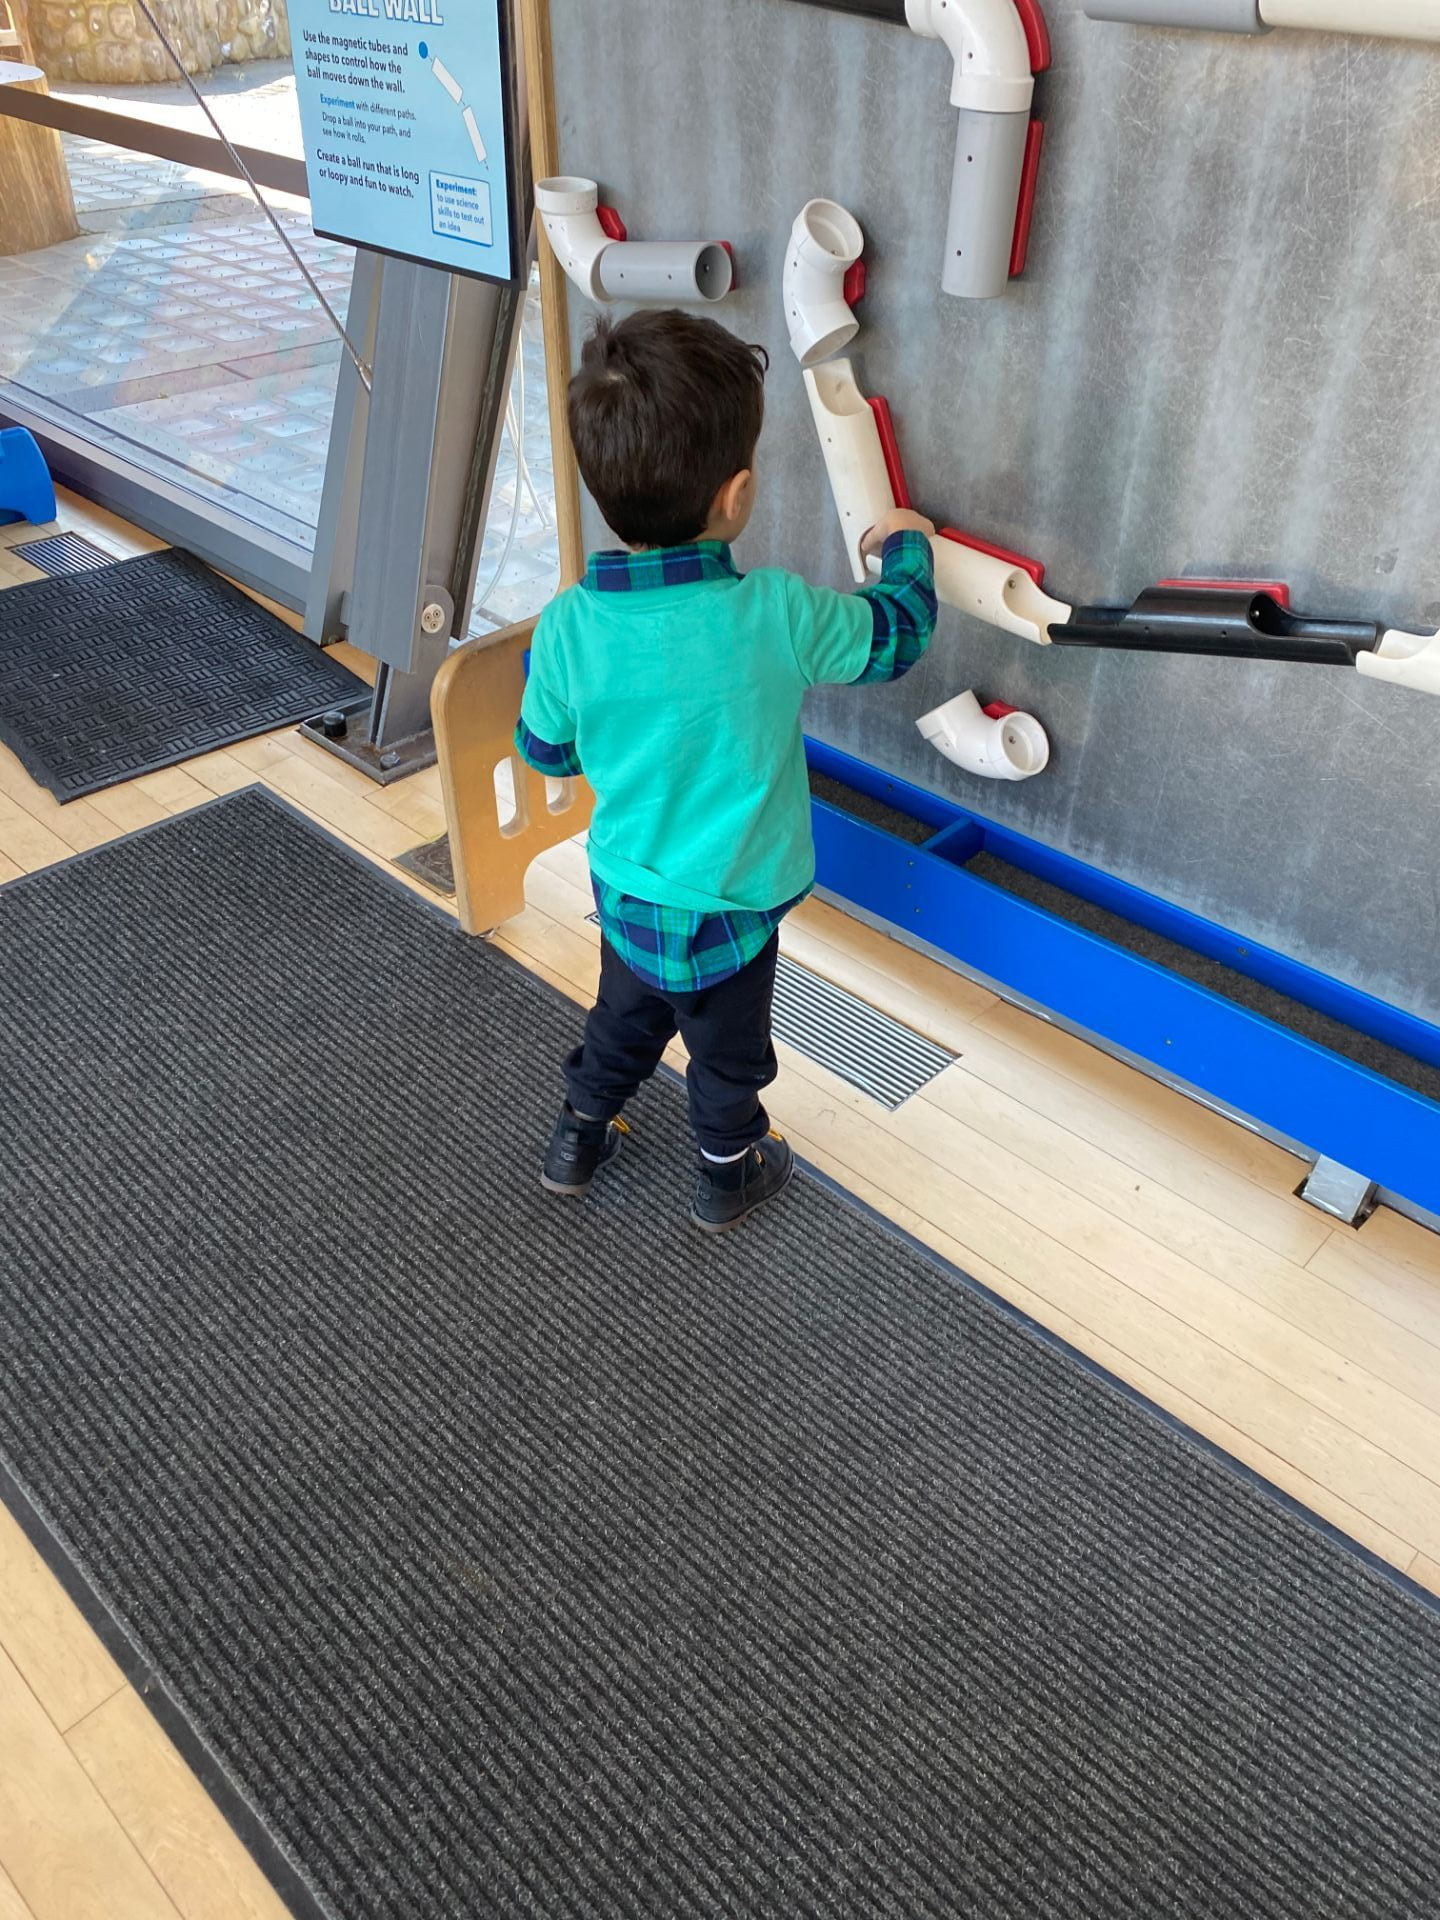 child exploring the ball wall at snug harbor children's museum